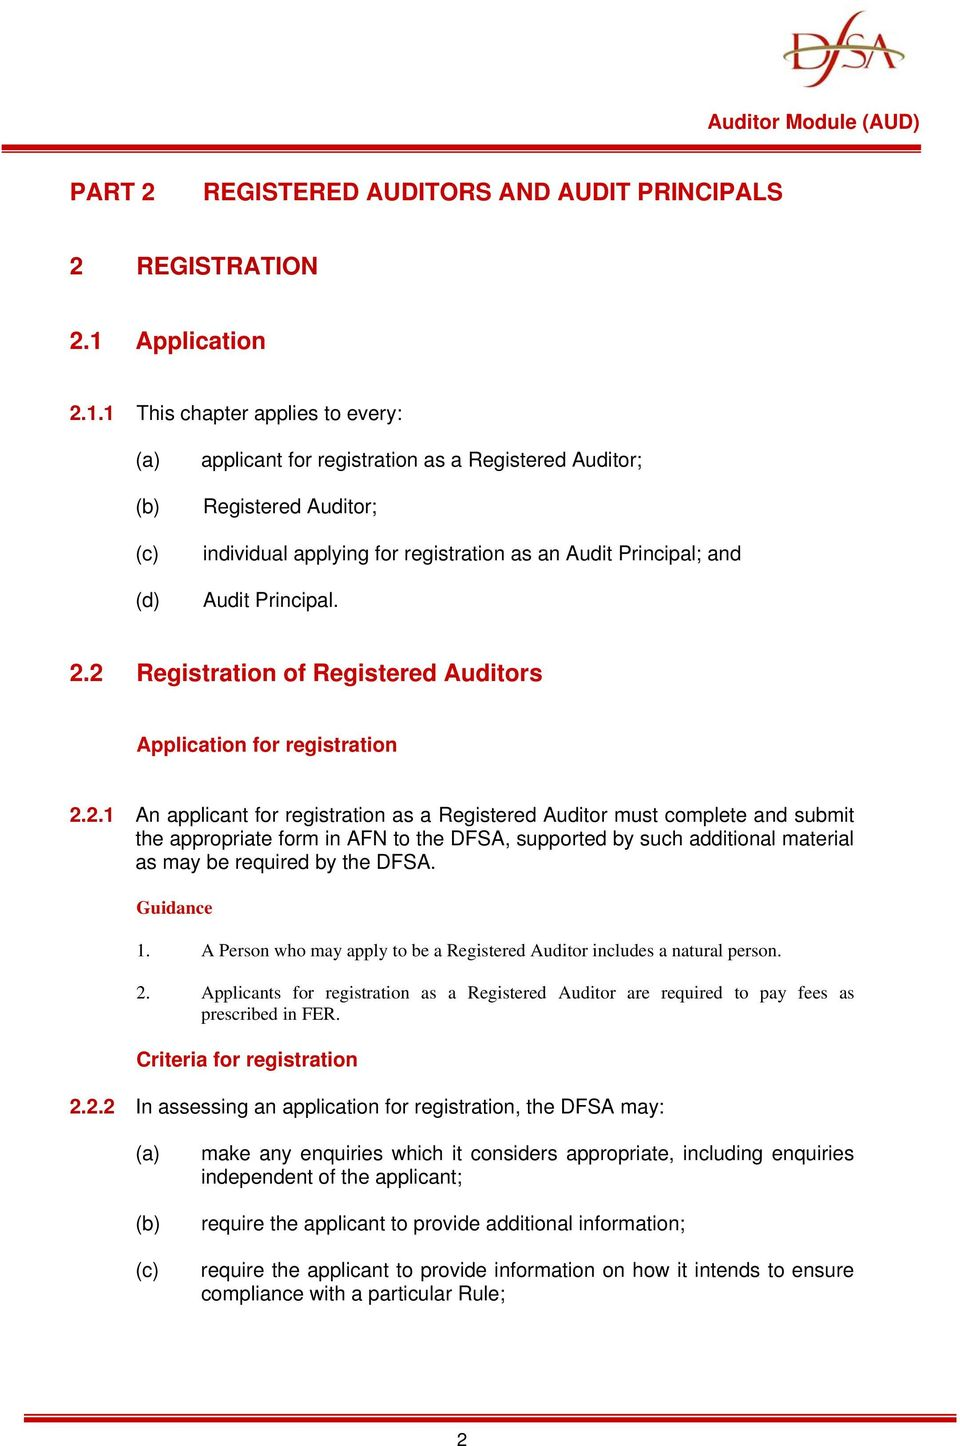 1 This chapter applies to every: (d) applicant for registration as a Registered Auditor; Registered Auditor; individual applying for registration as an Audit Principal; and Audit Principal. 2.